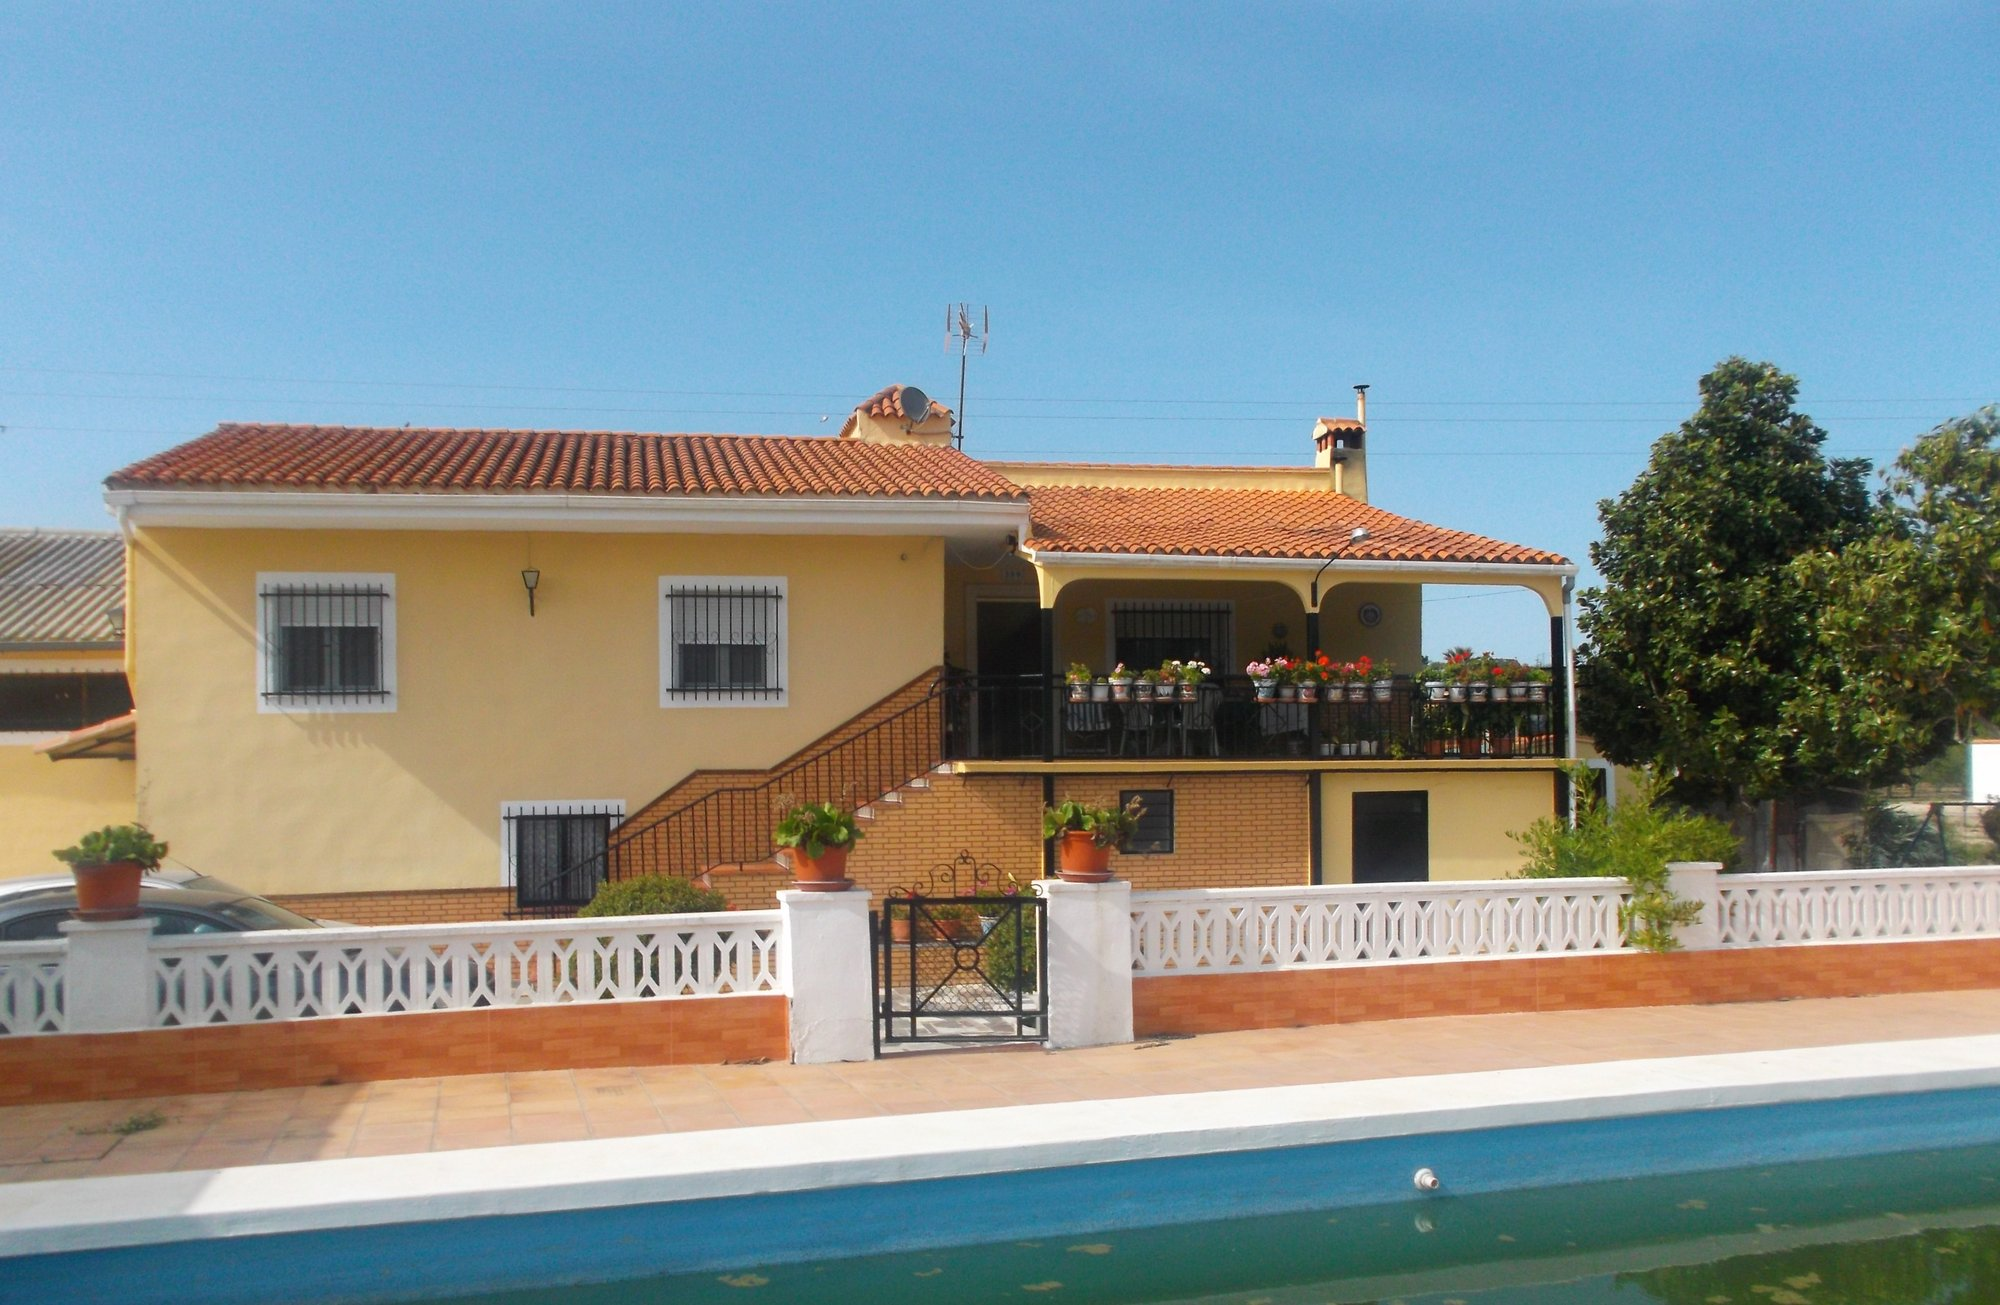 Ref:O9166 Villa For Sale in AGULLENT